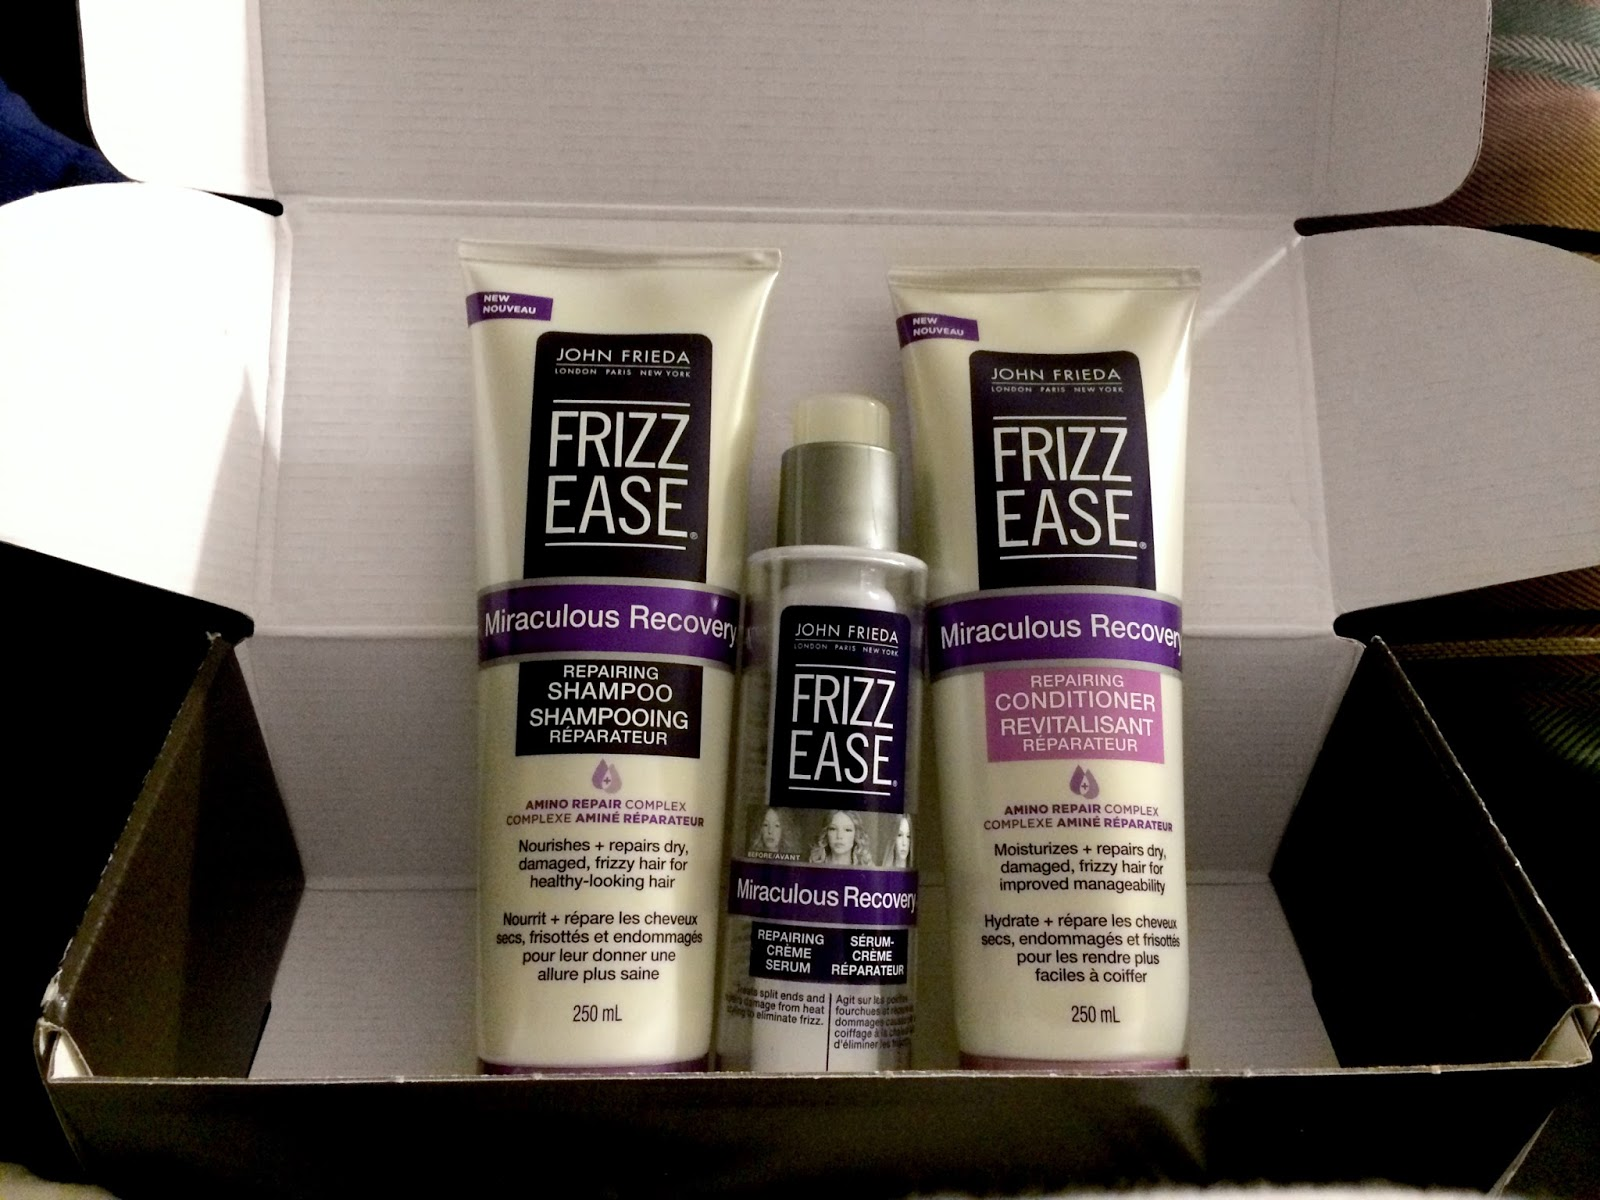 John Frieda Frizz Ease Review   Le Northern Belle